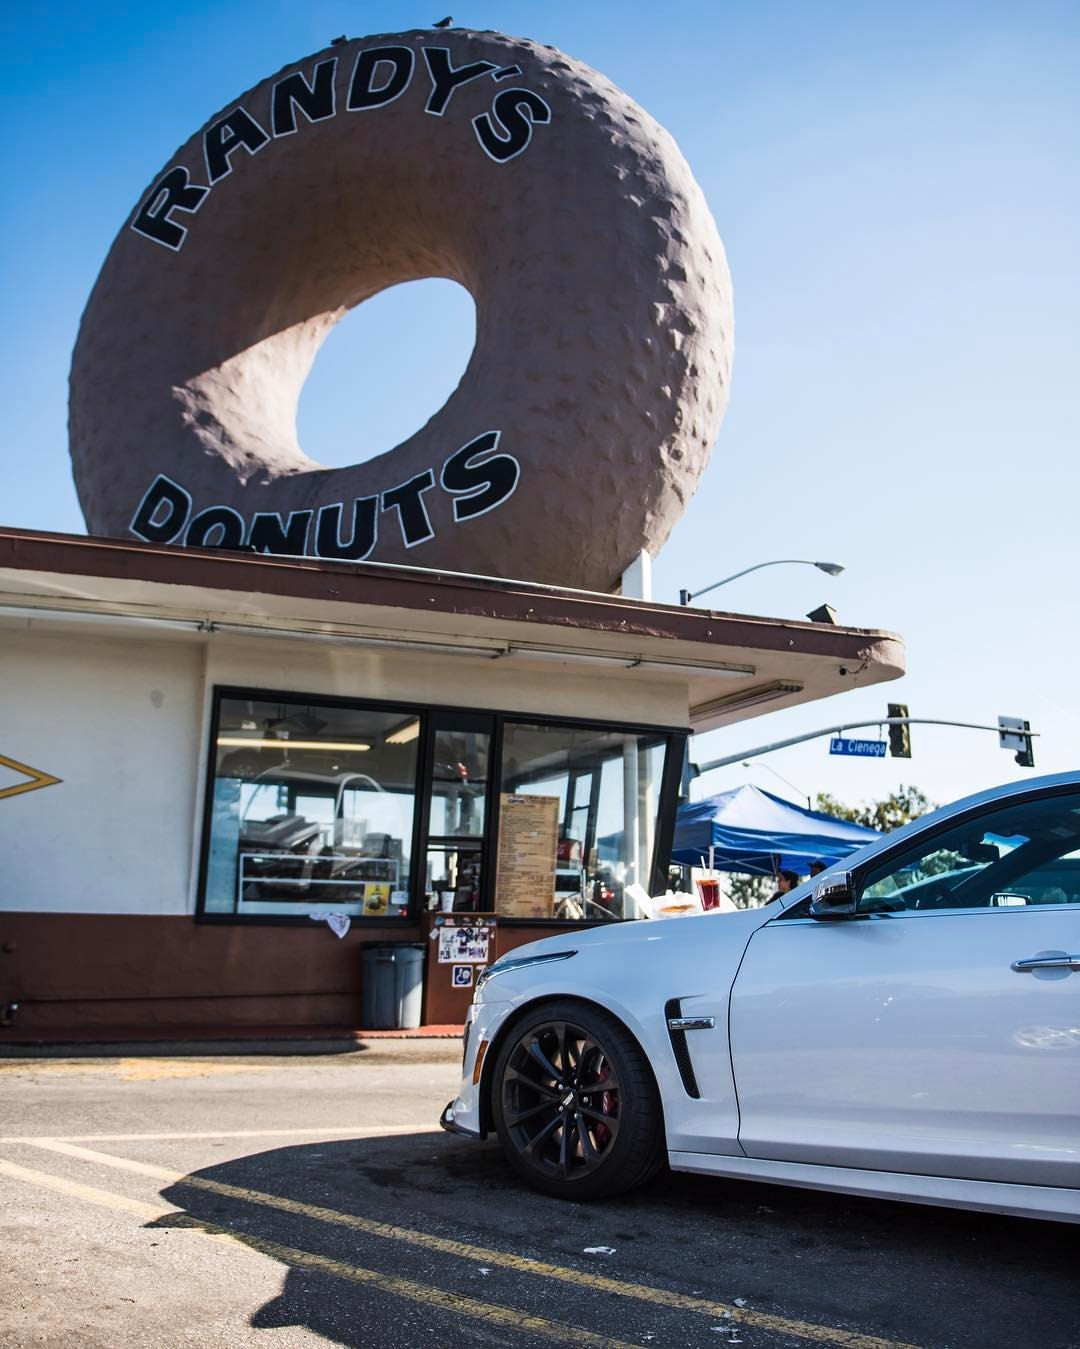 Another LA classic in the #fastfoodfastcars series for @heldth   @randysdonutsla - thanks to @cadillaceurope for this beautiful CTS-V.     #lalaland #la #losangeles #inglewood #randysdonuts #hammerfettbombekrass #foodies #automotivephotography #californiadreamin #heldthontour #donutshop #ctsv  (at Randy's Donuts)